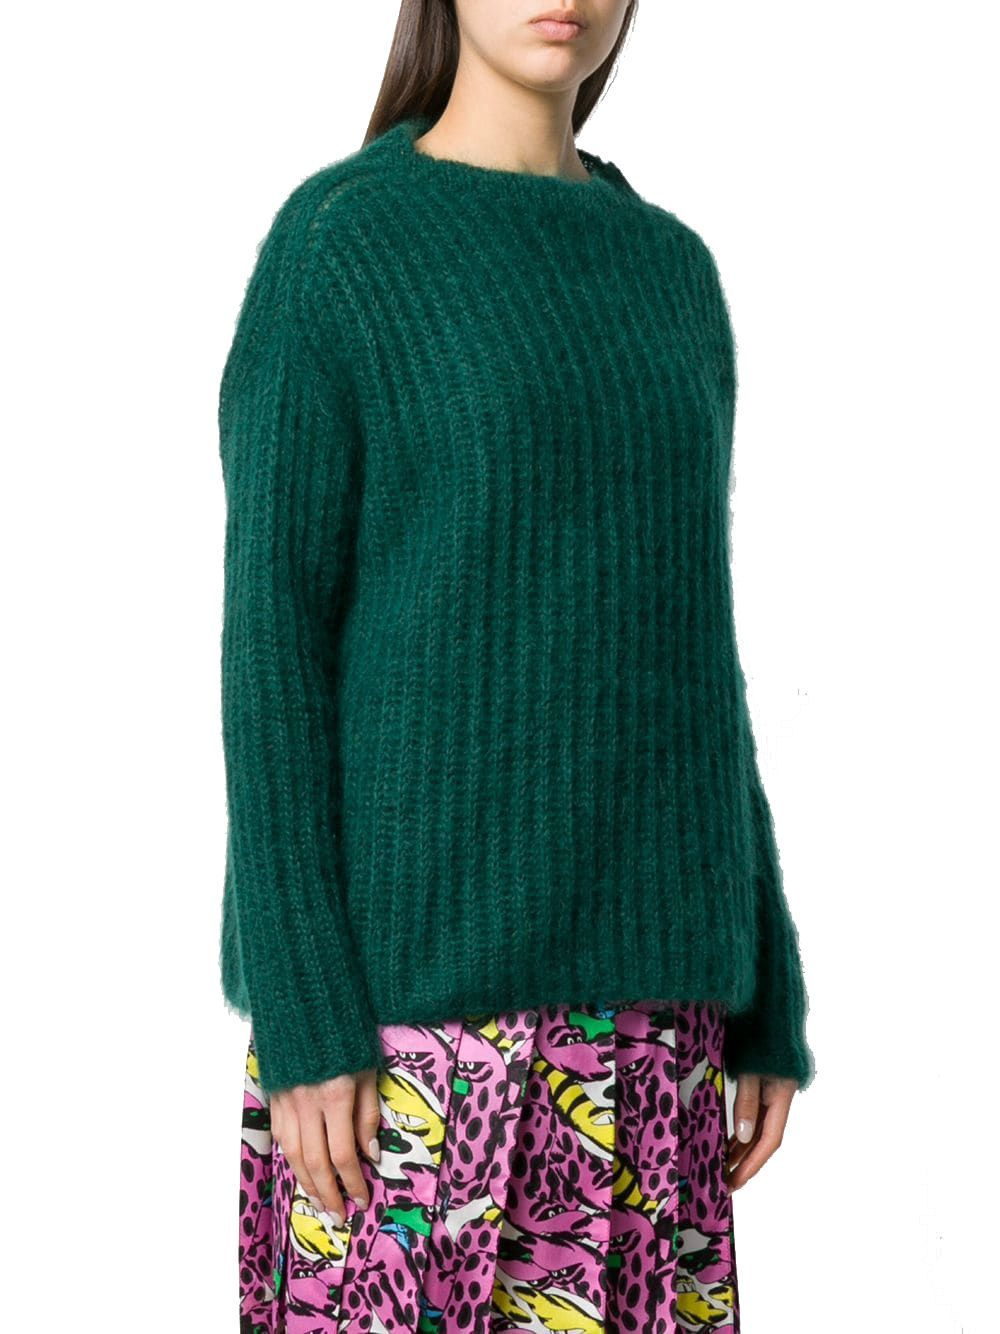 MARNI WOMEN'S GCMD0123A0FU18300V60 GREEN WOOL SWEATER